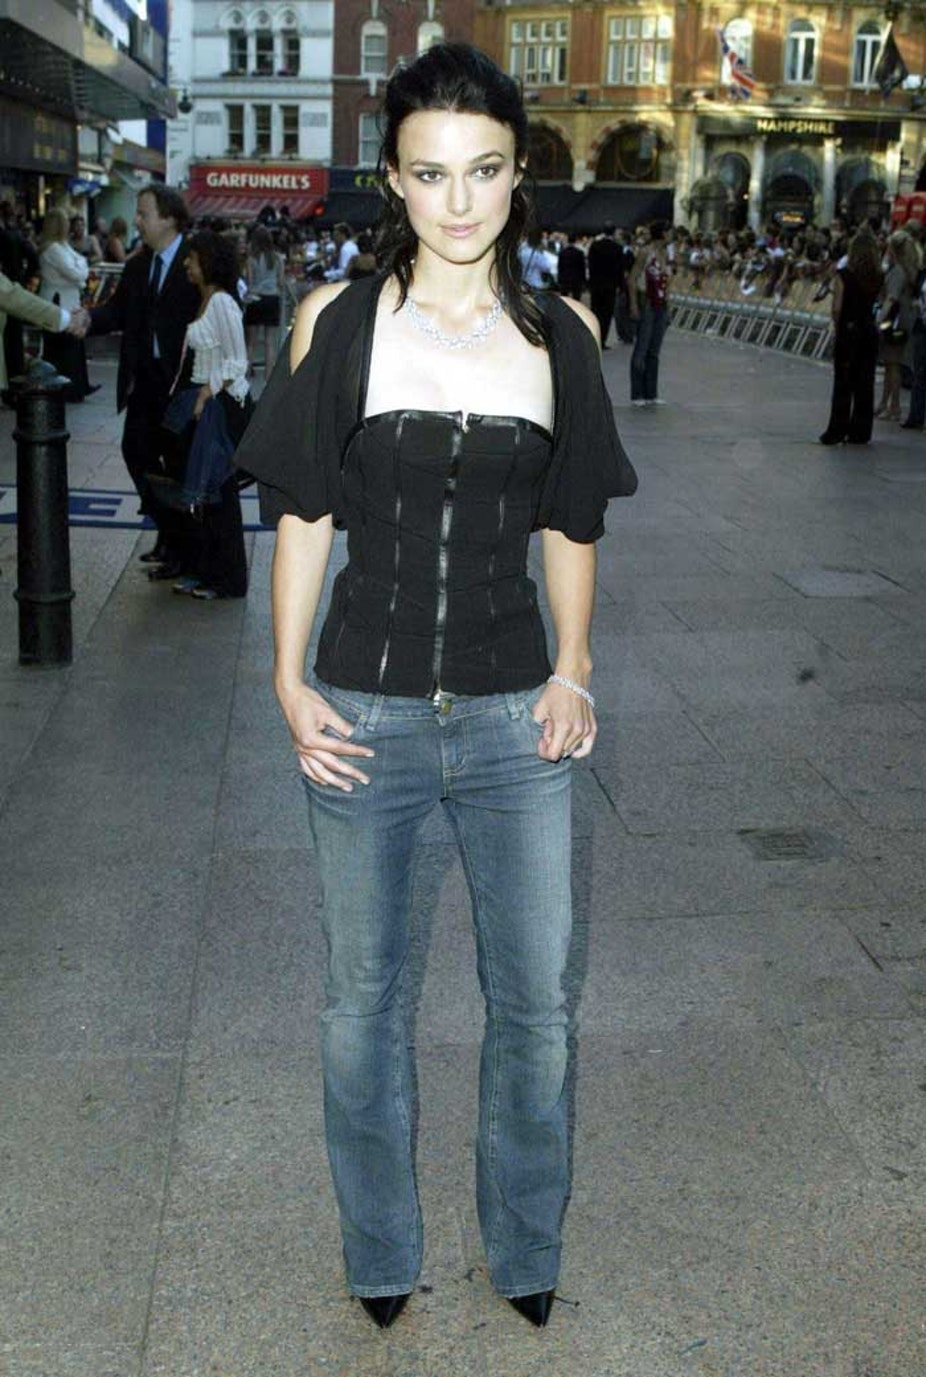 Keira Knightley premiere på Pirates of the caribbean i 2003